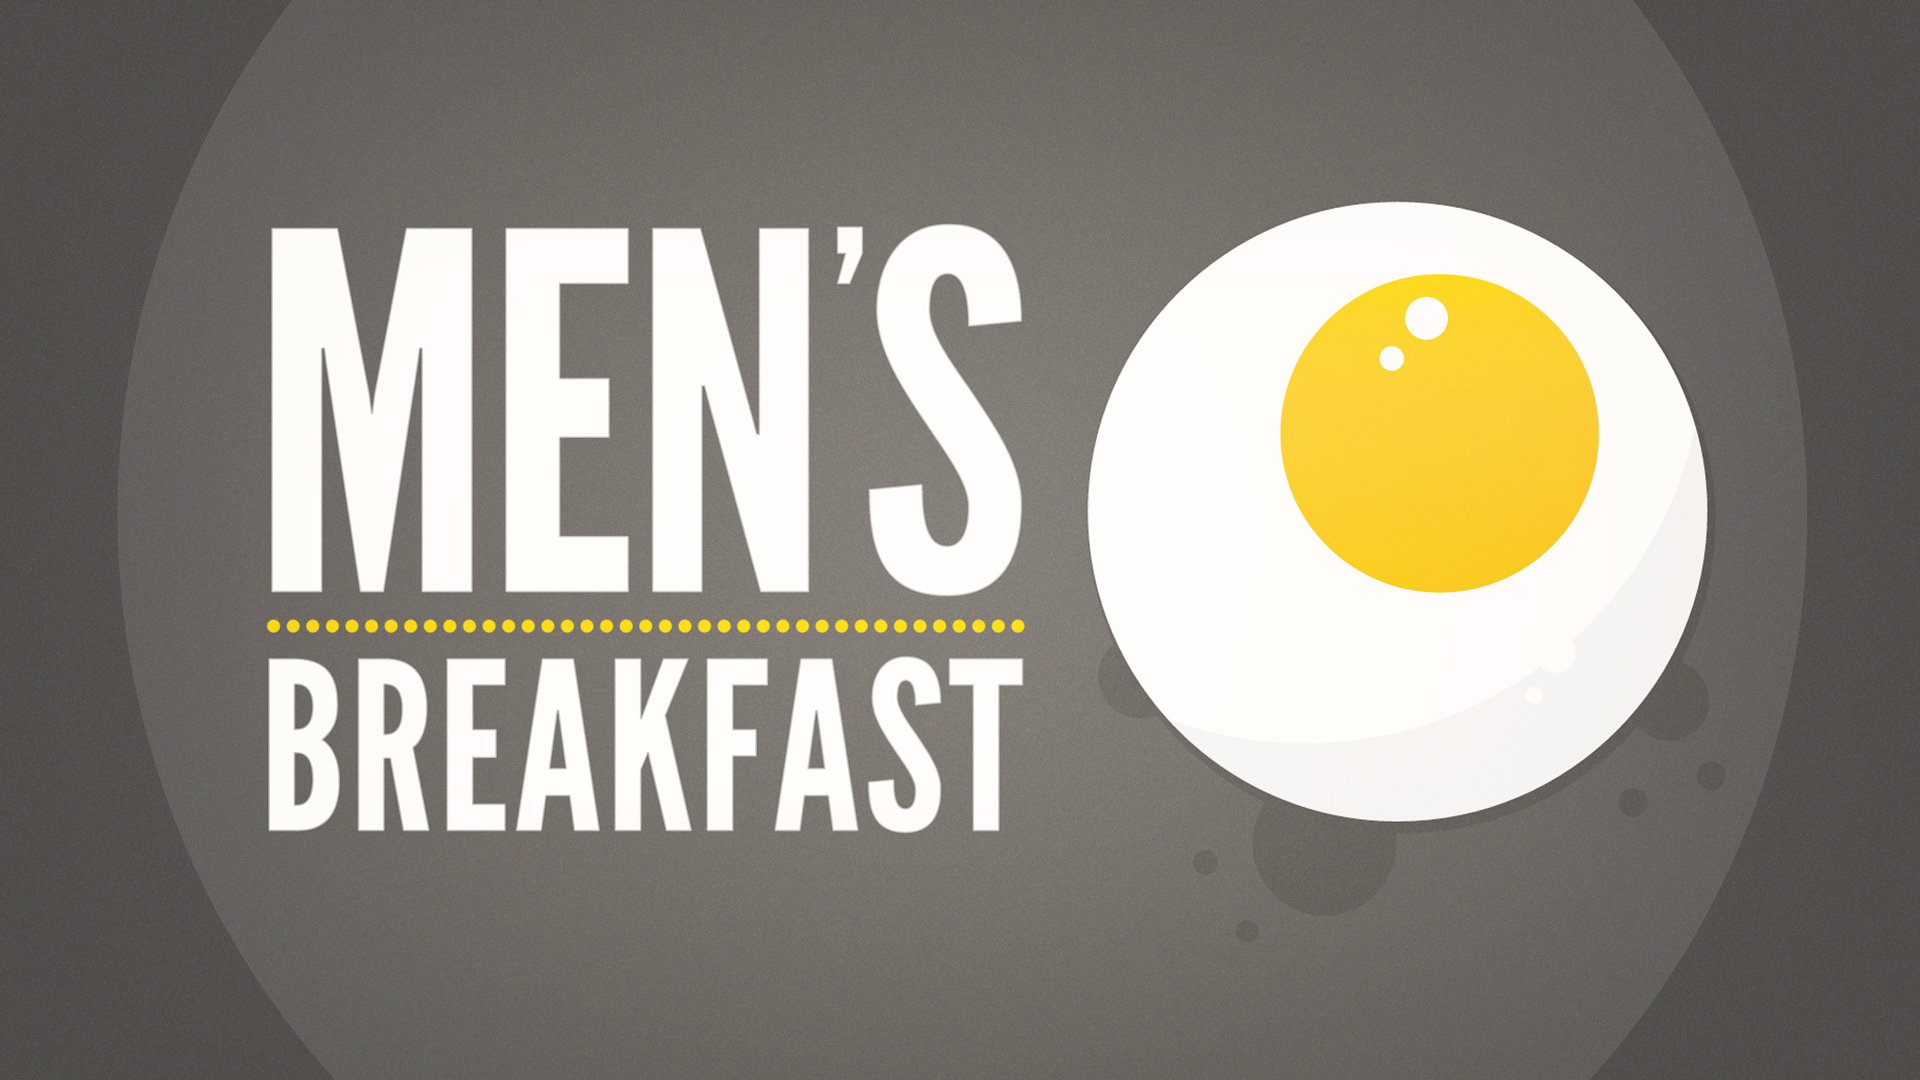 Free Men's Breakfast Cliparts, Download Free Clip Art, Free.